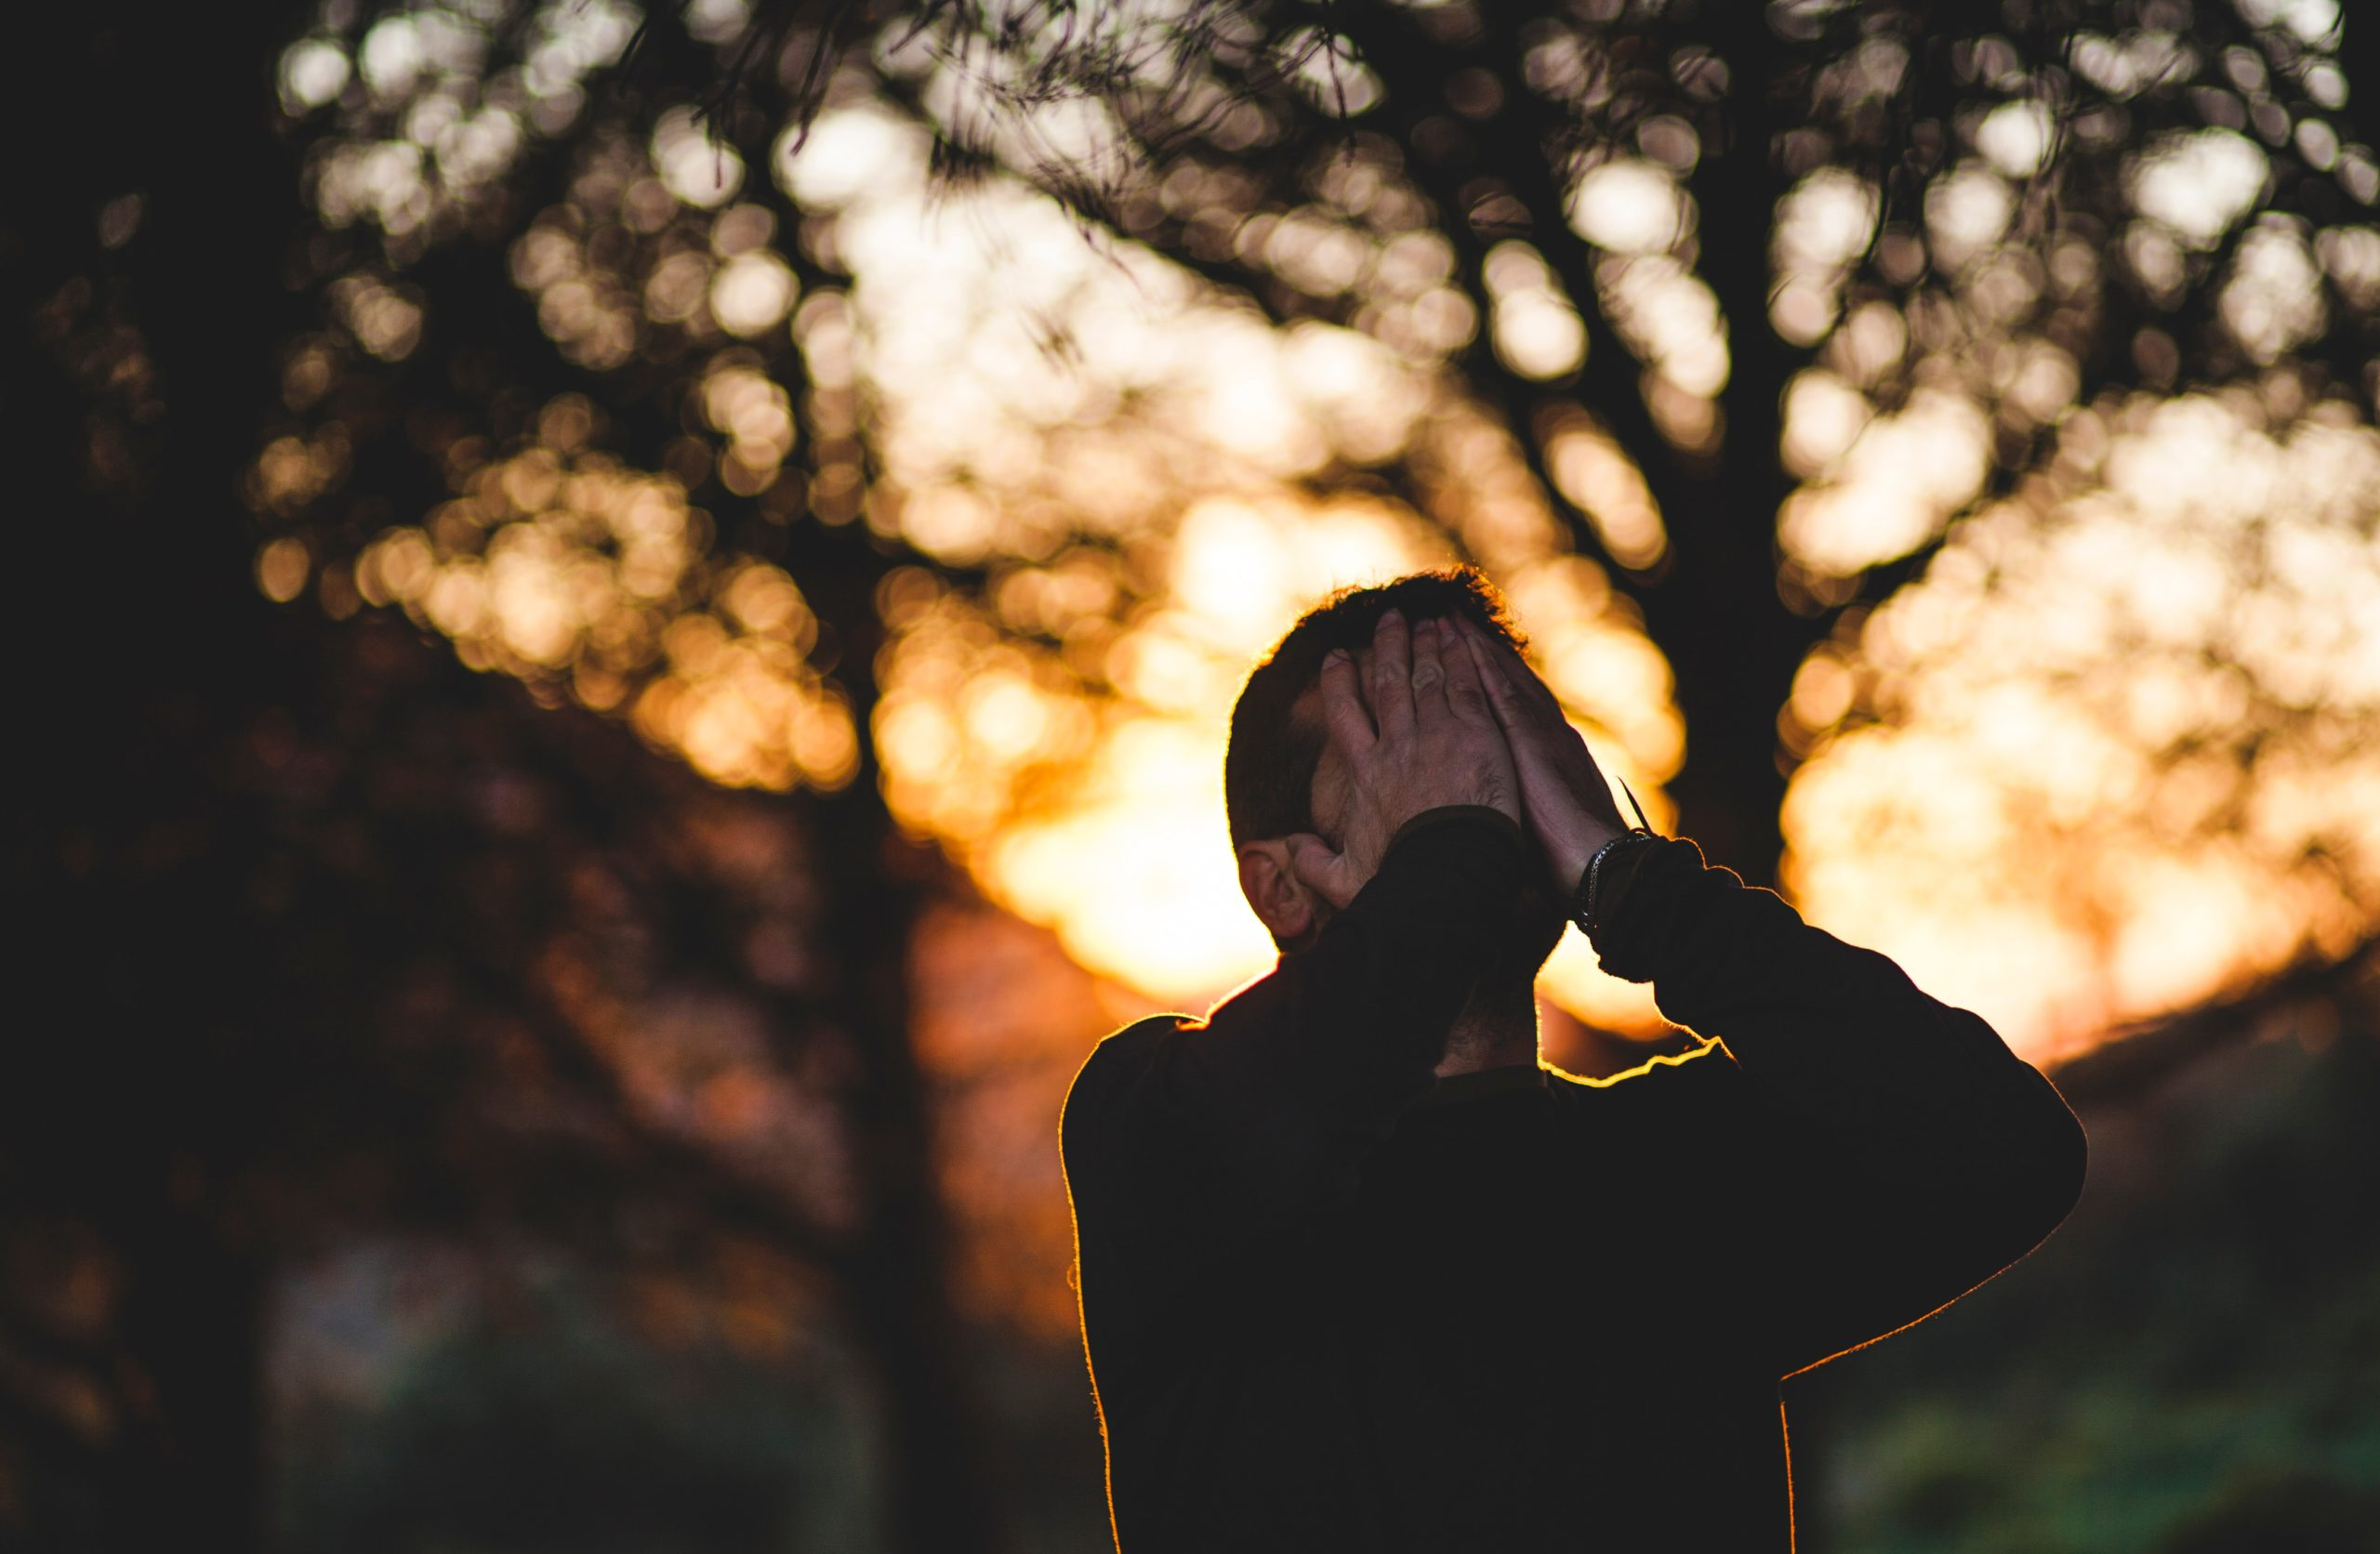 Are you experiencing Compassion Fatigue?